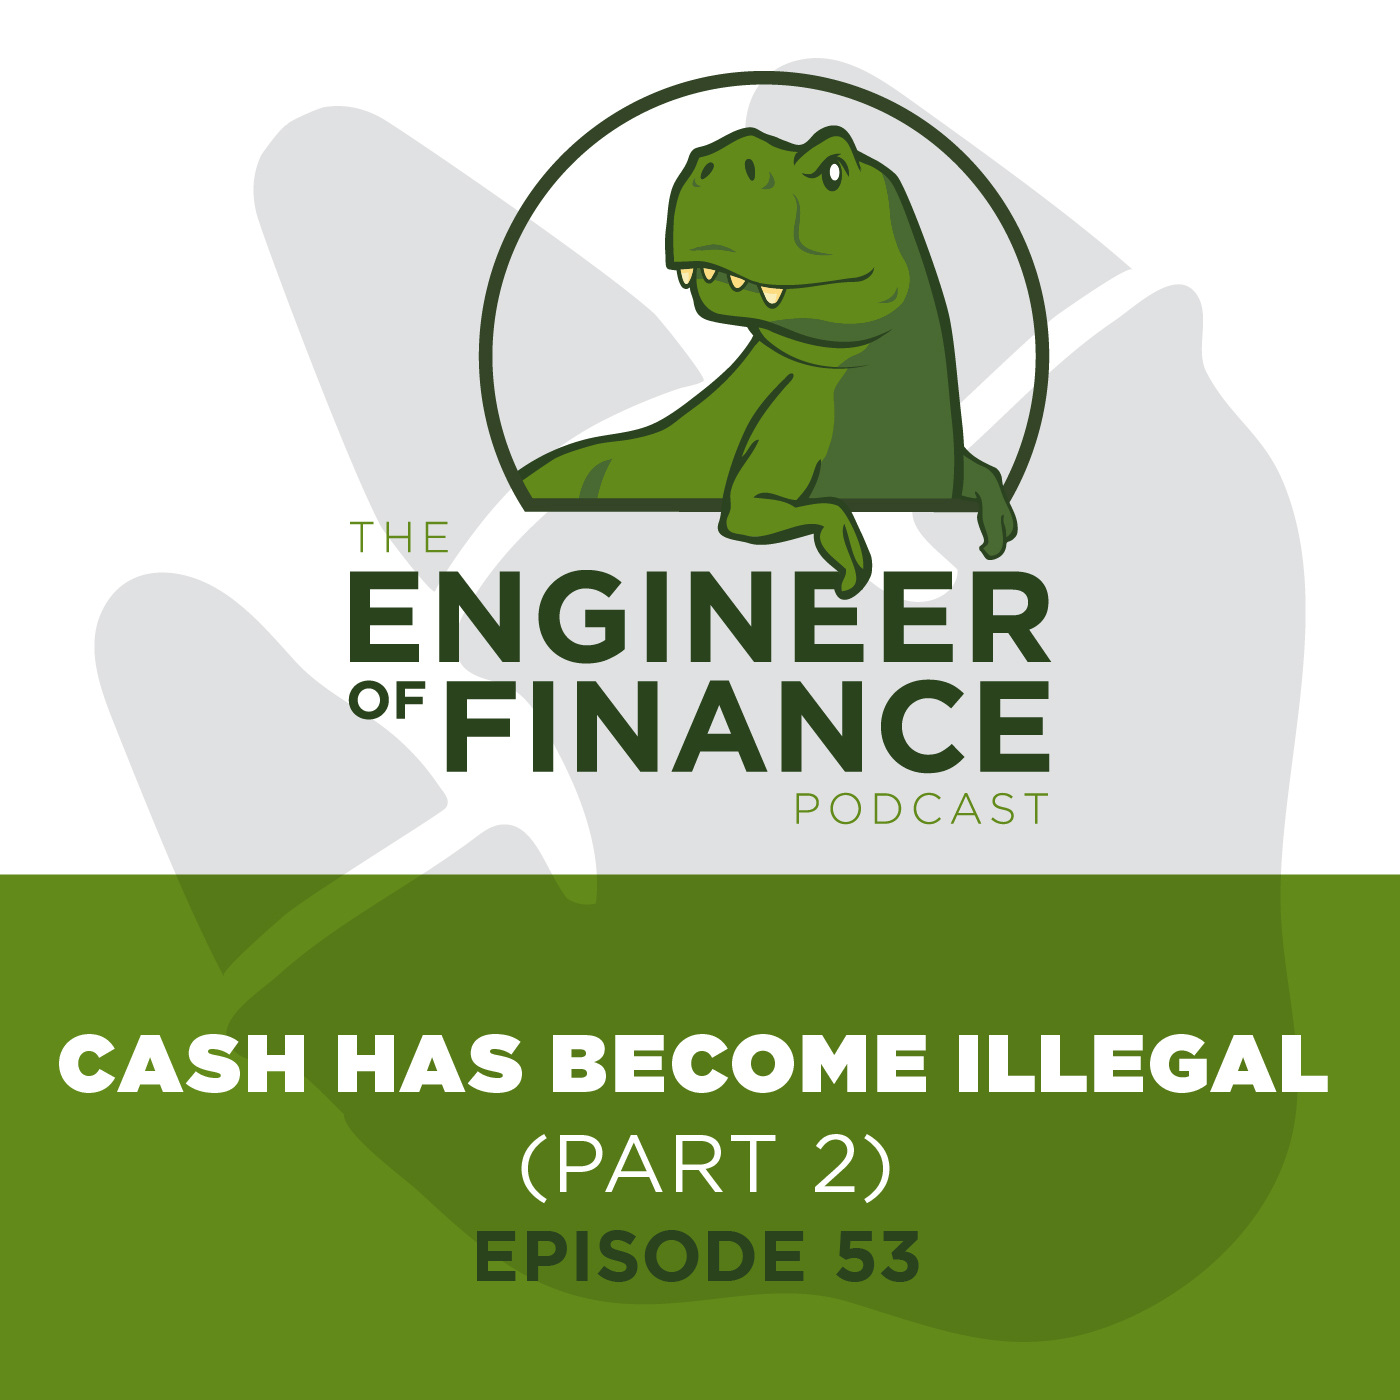 Cash Has Become Illegal (Part 2)  – Episode 53